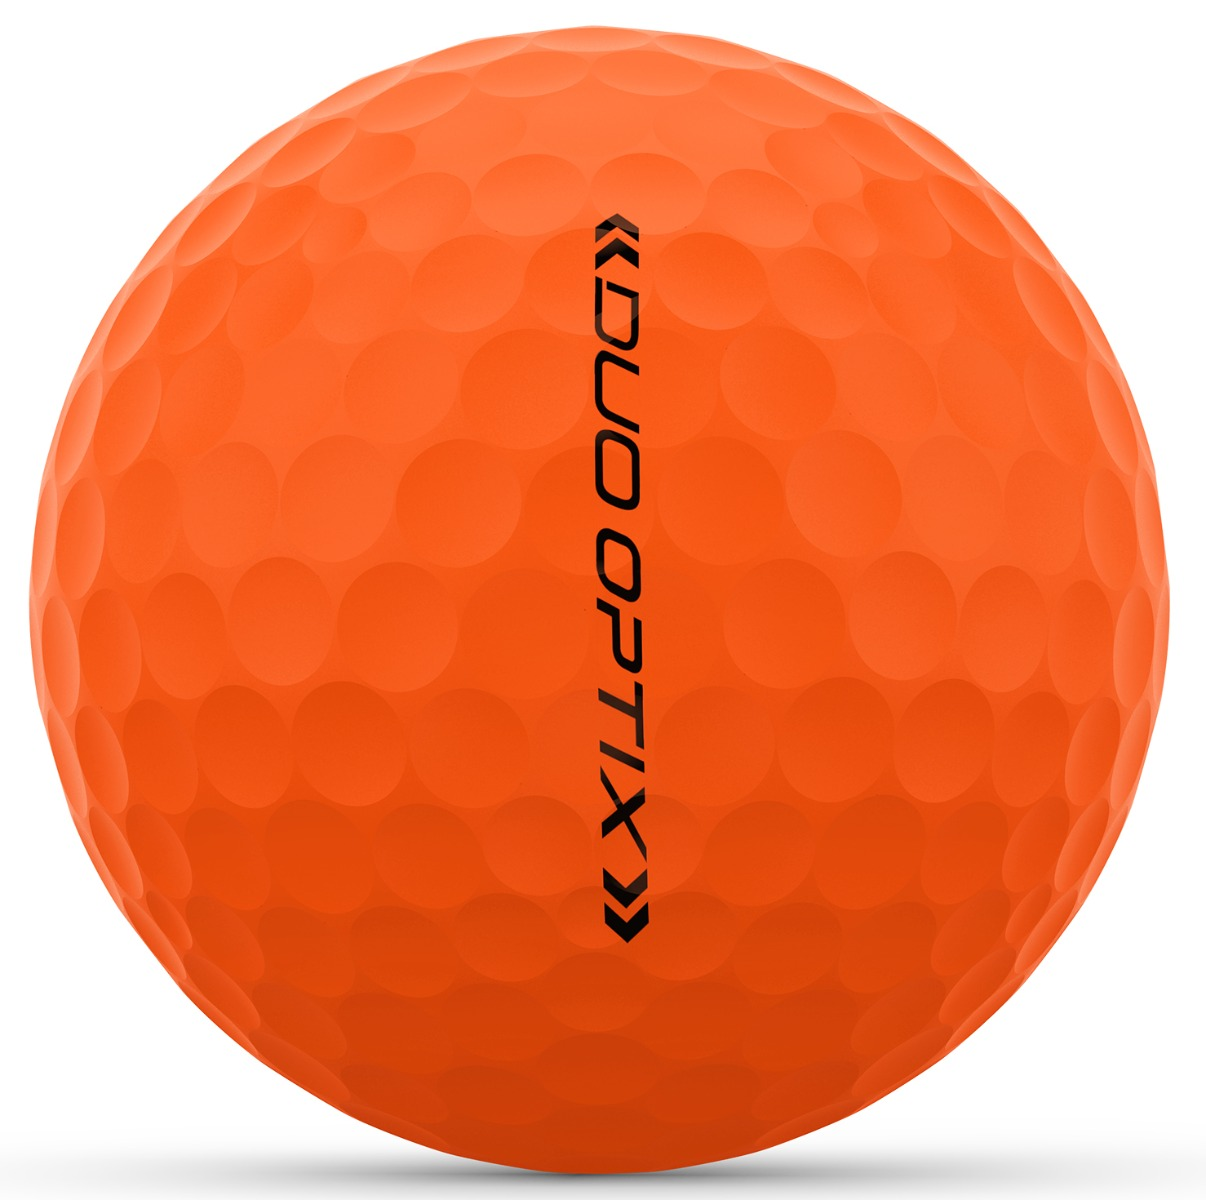 https://www.best4balls.com/pub/media/catalog/product/d/u/duo_optix_orange_ball_600.jpg